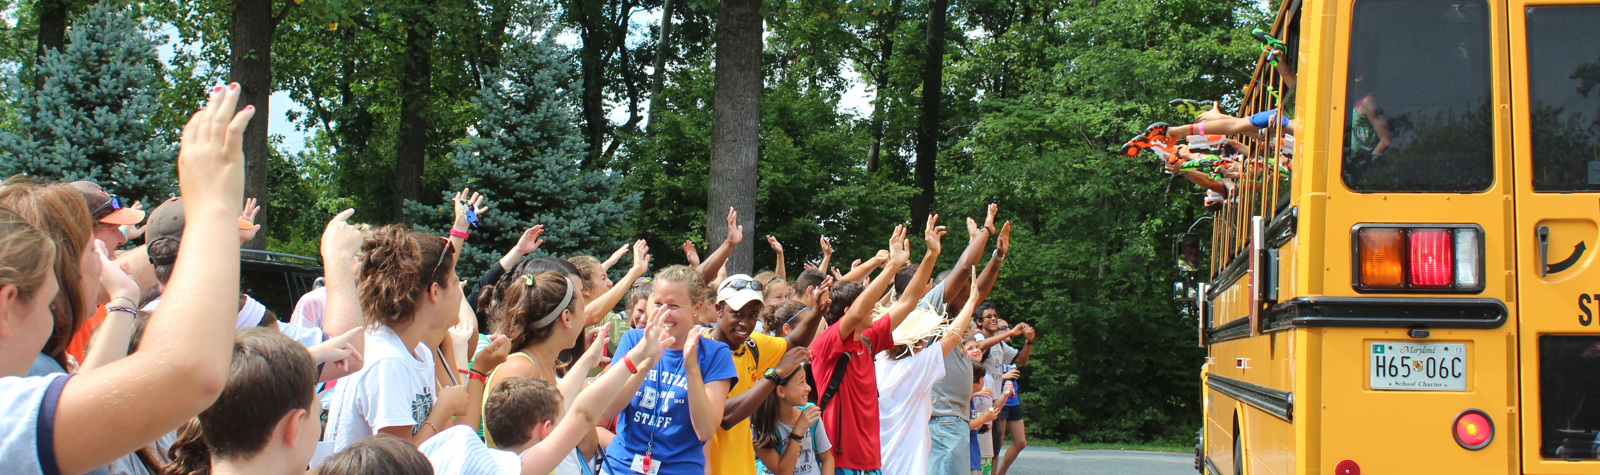 Discipleship Through the Eyes of Youth: Day 13